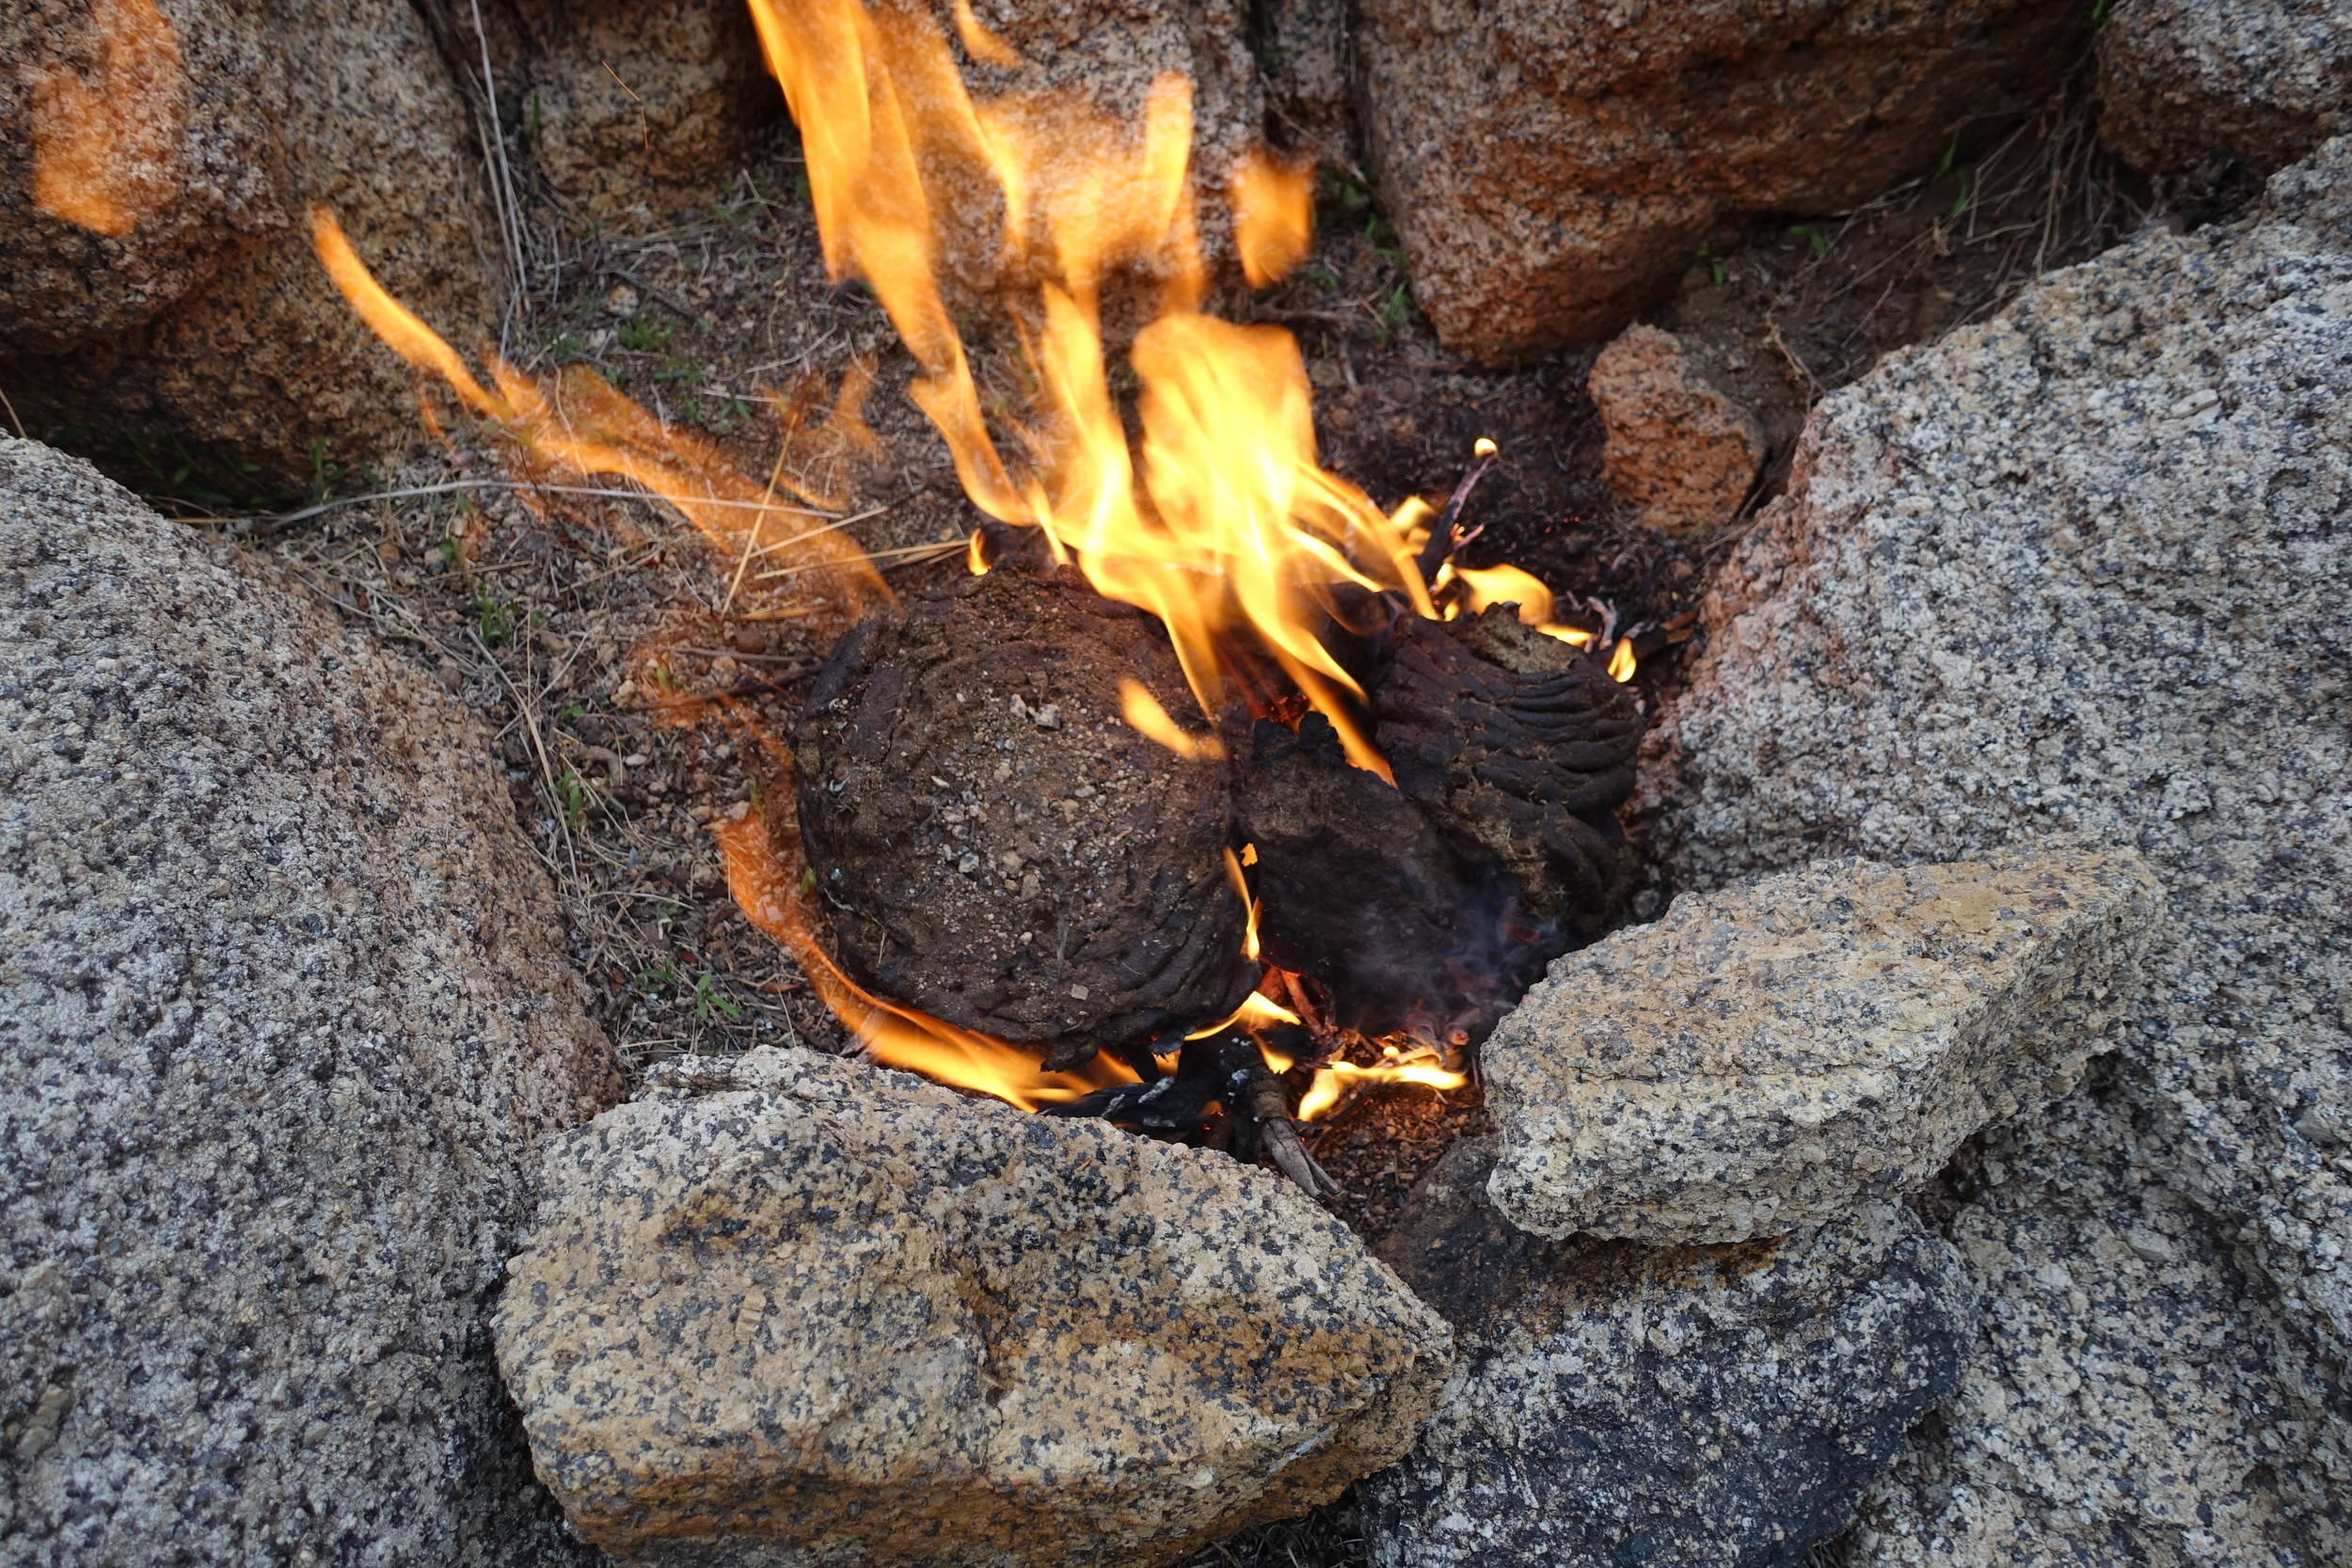 Nomads burn dung to make guest gers warm:an exemple of their tradition to efficiently use ressources.